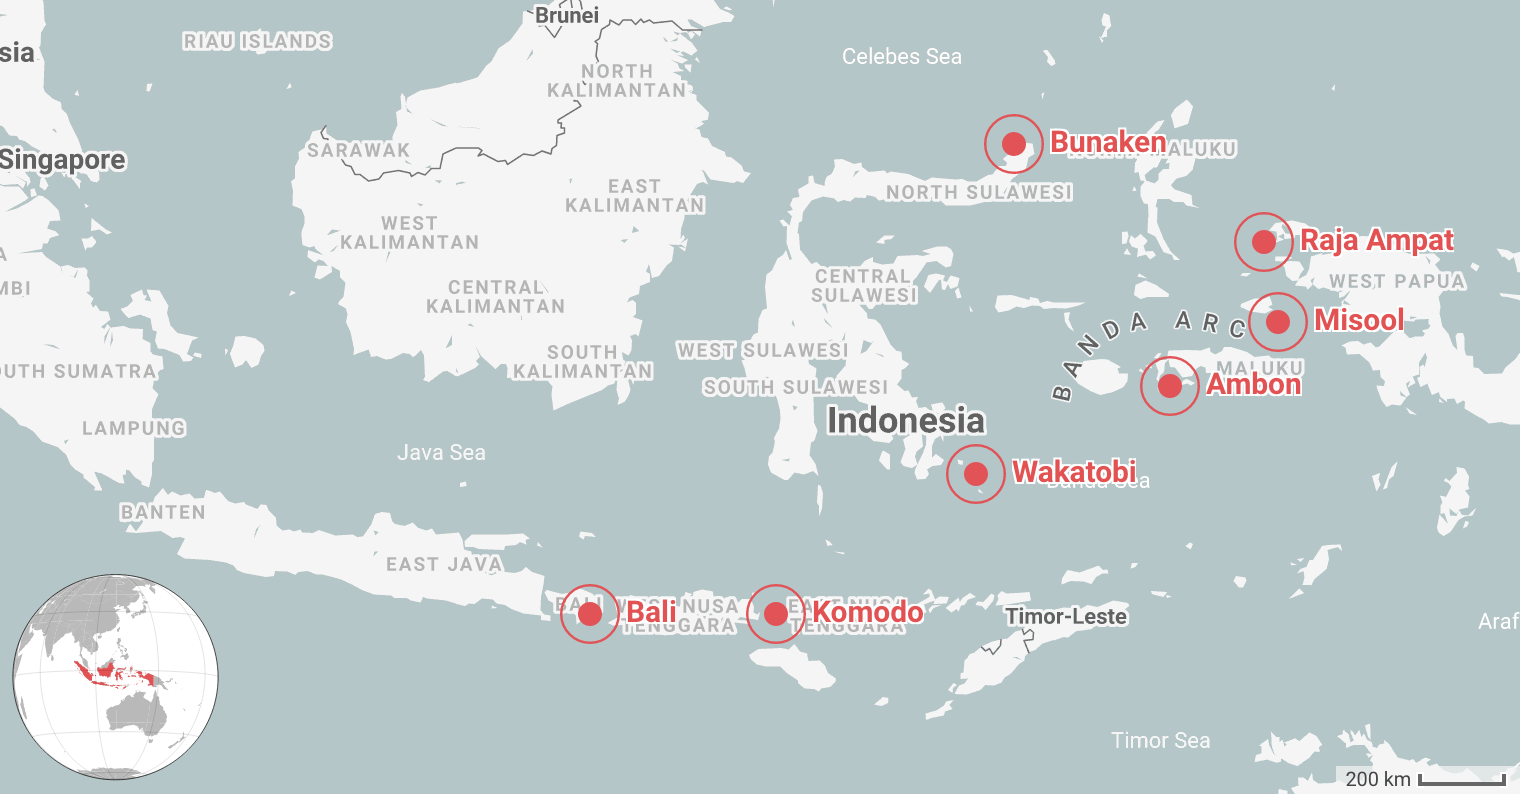 Best Places for Diving in Indonesia